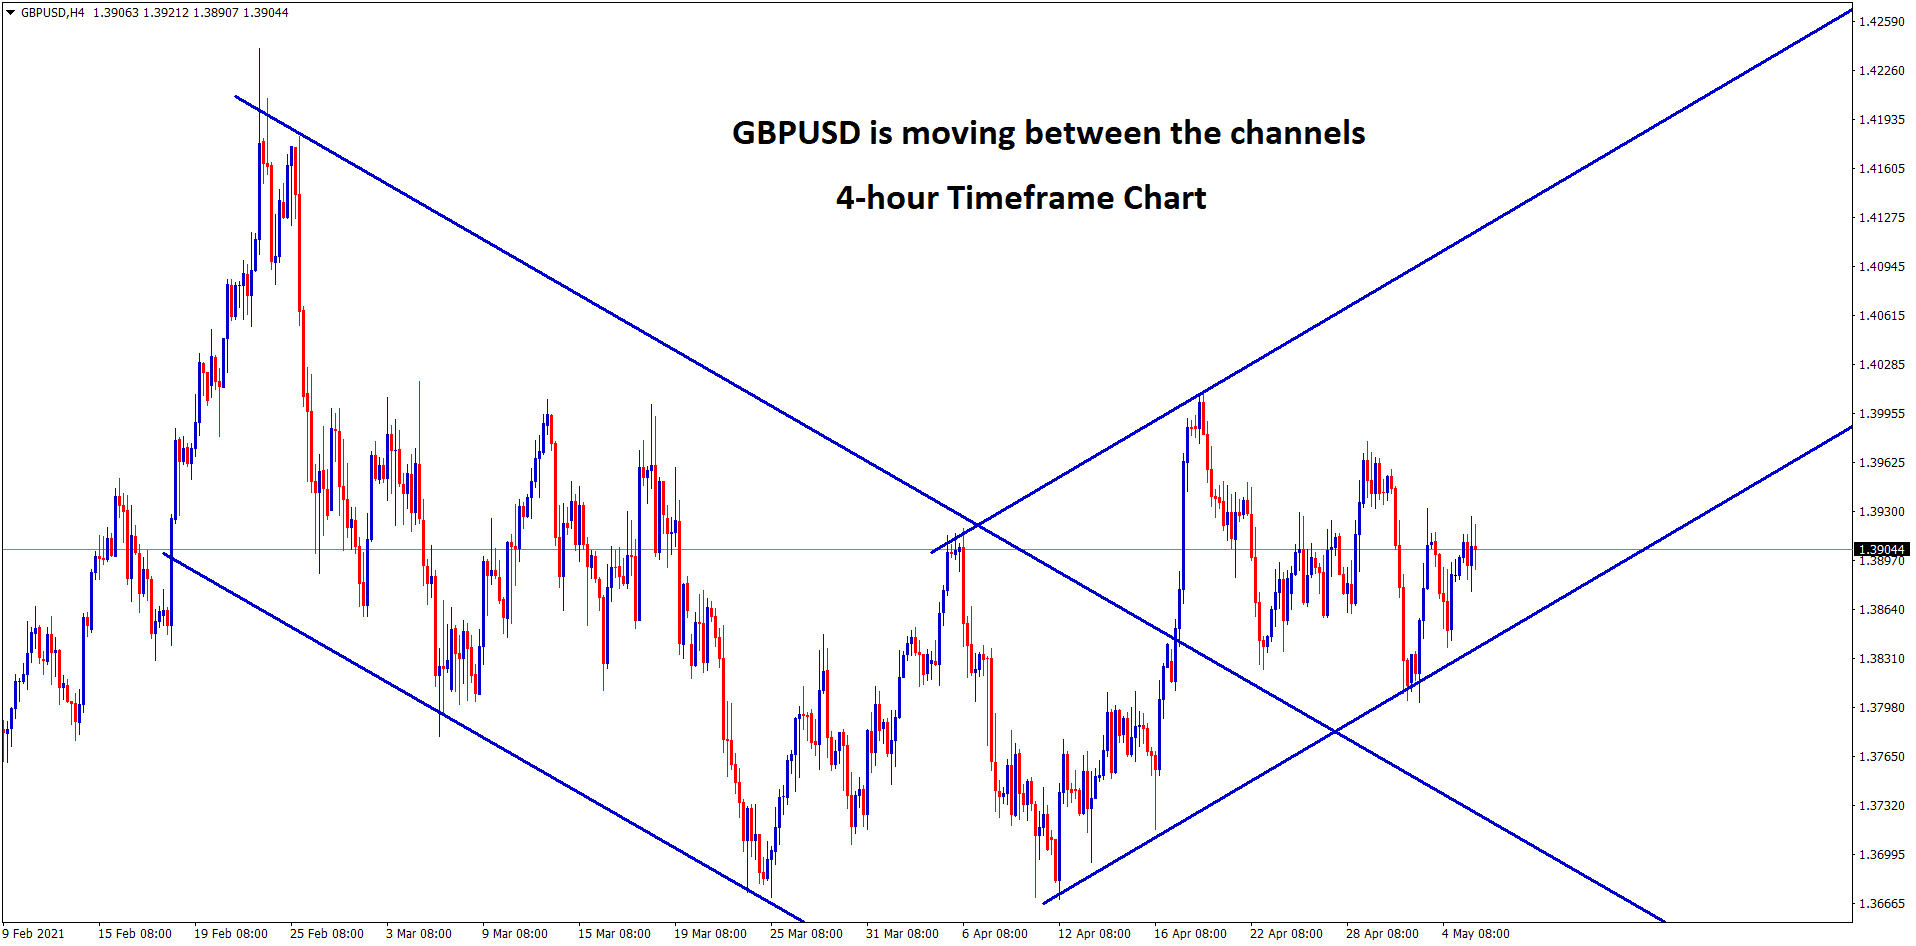 GBPUSD moving in a channel ranges